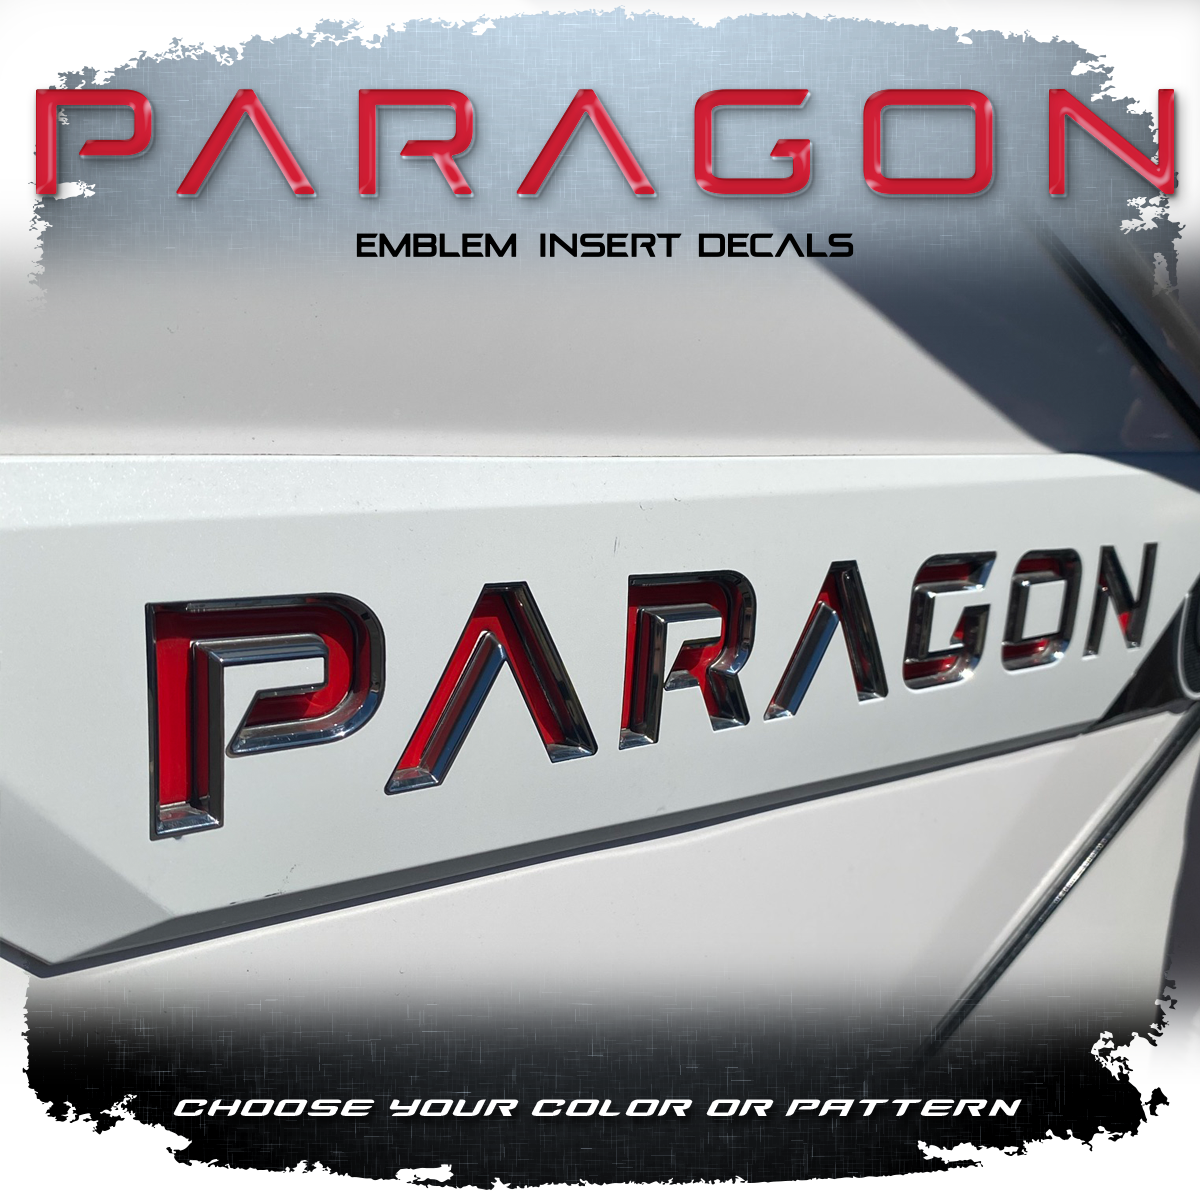 Nautique Paragon Domed Decal Insert Set (2 included)